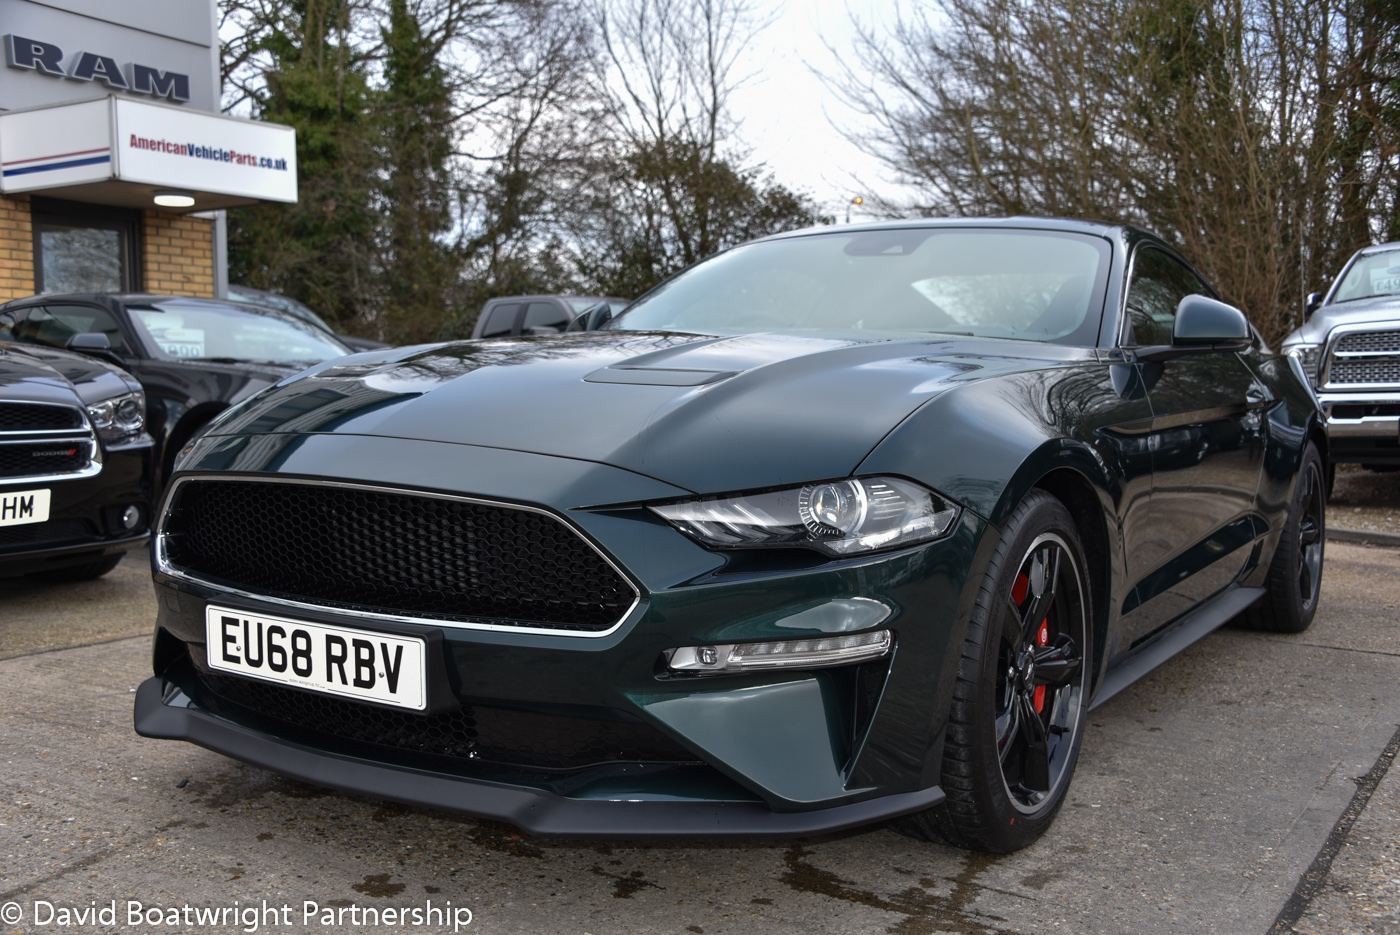 2019 MUSTANG BULLITT UK Right Hand Drive